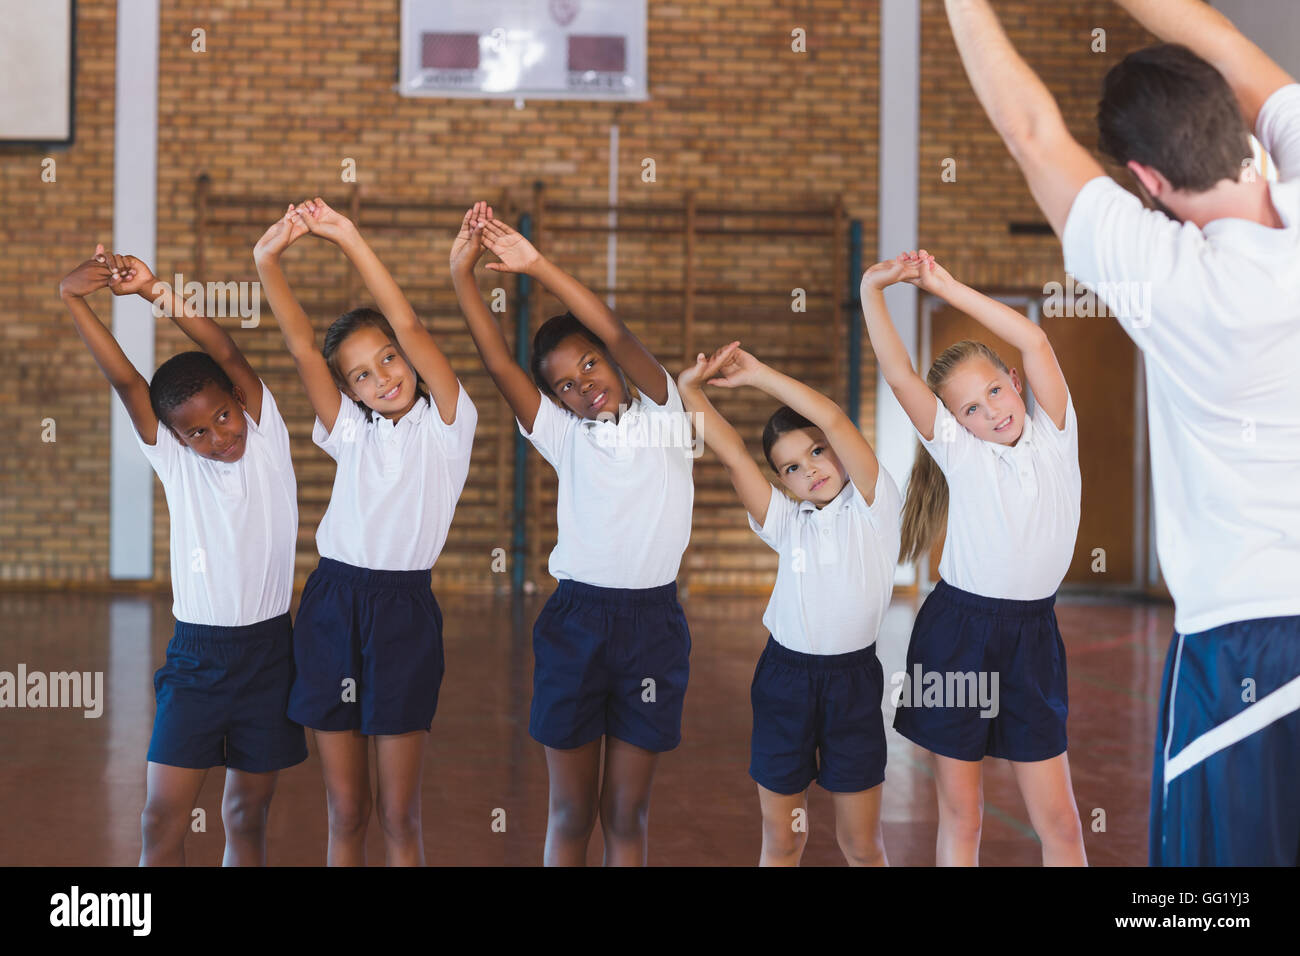 Teacher teaching exercise to school kids in basketball court - Stock Image